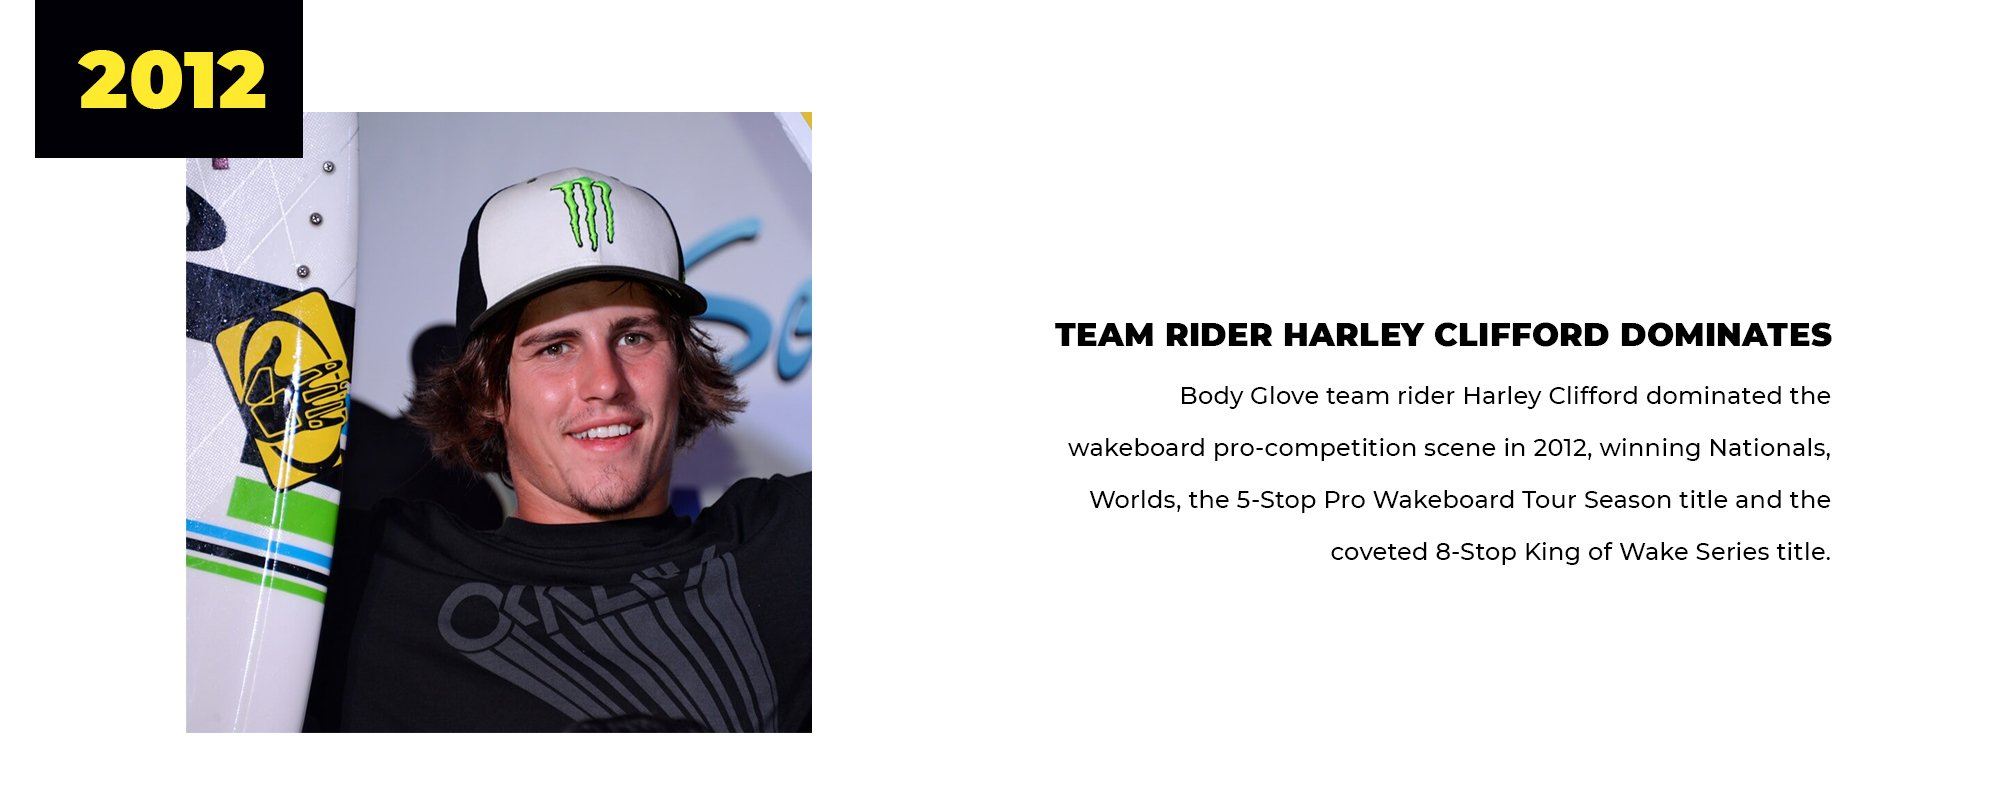 2012 | Team Rider Harley Clifford Dominates | Body Glove team rider Harley Clifford dominated the wakeboard pro-competition scene in 2012, winning Nationals, Worlds, the 5-Stop Pro Wakeboard Tour Season title, and the coveted 8-Stop King of Wake Series title.